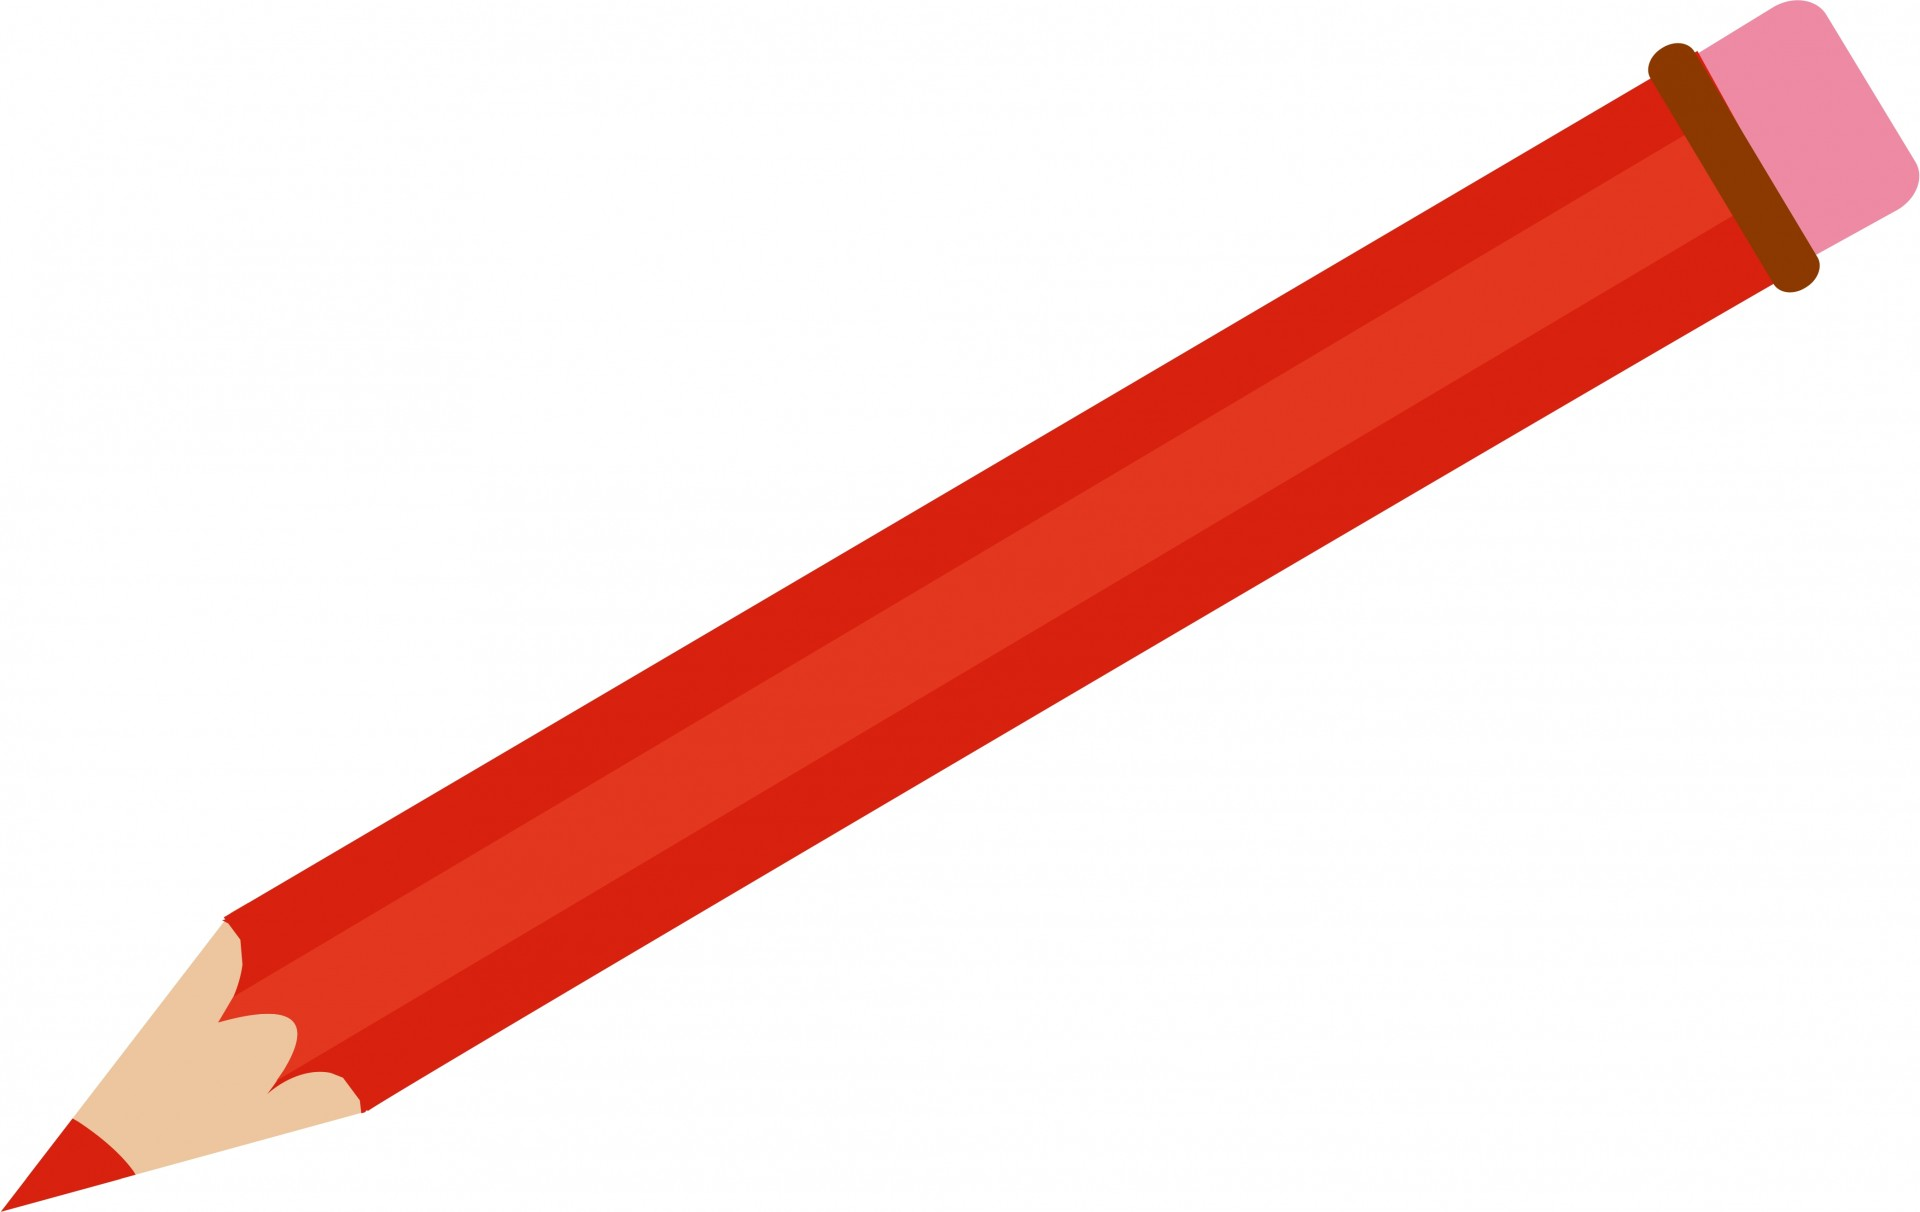 Pencil clipart. Red free stock photo